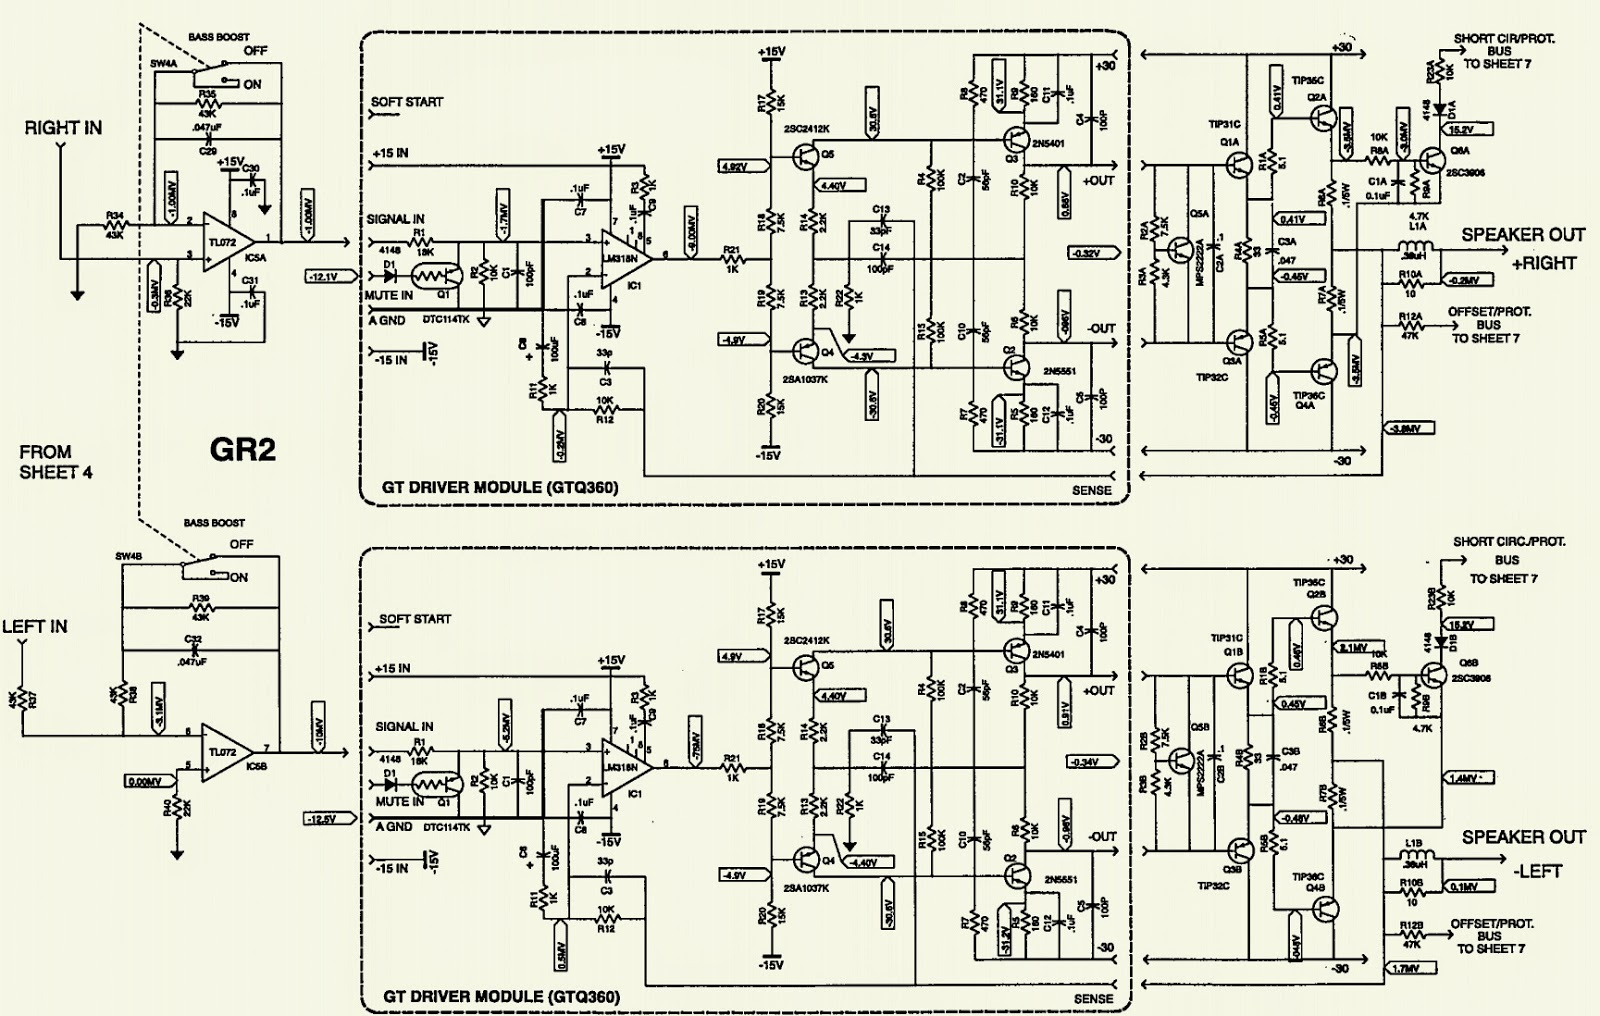 car power amplifier circuit diagram meetcolab car power amplifier circuit diagram car audio amplifier schematics diagrams get image